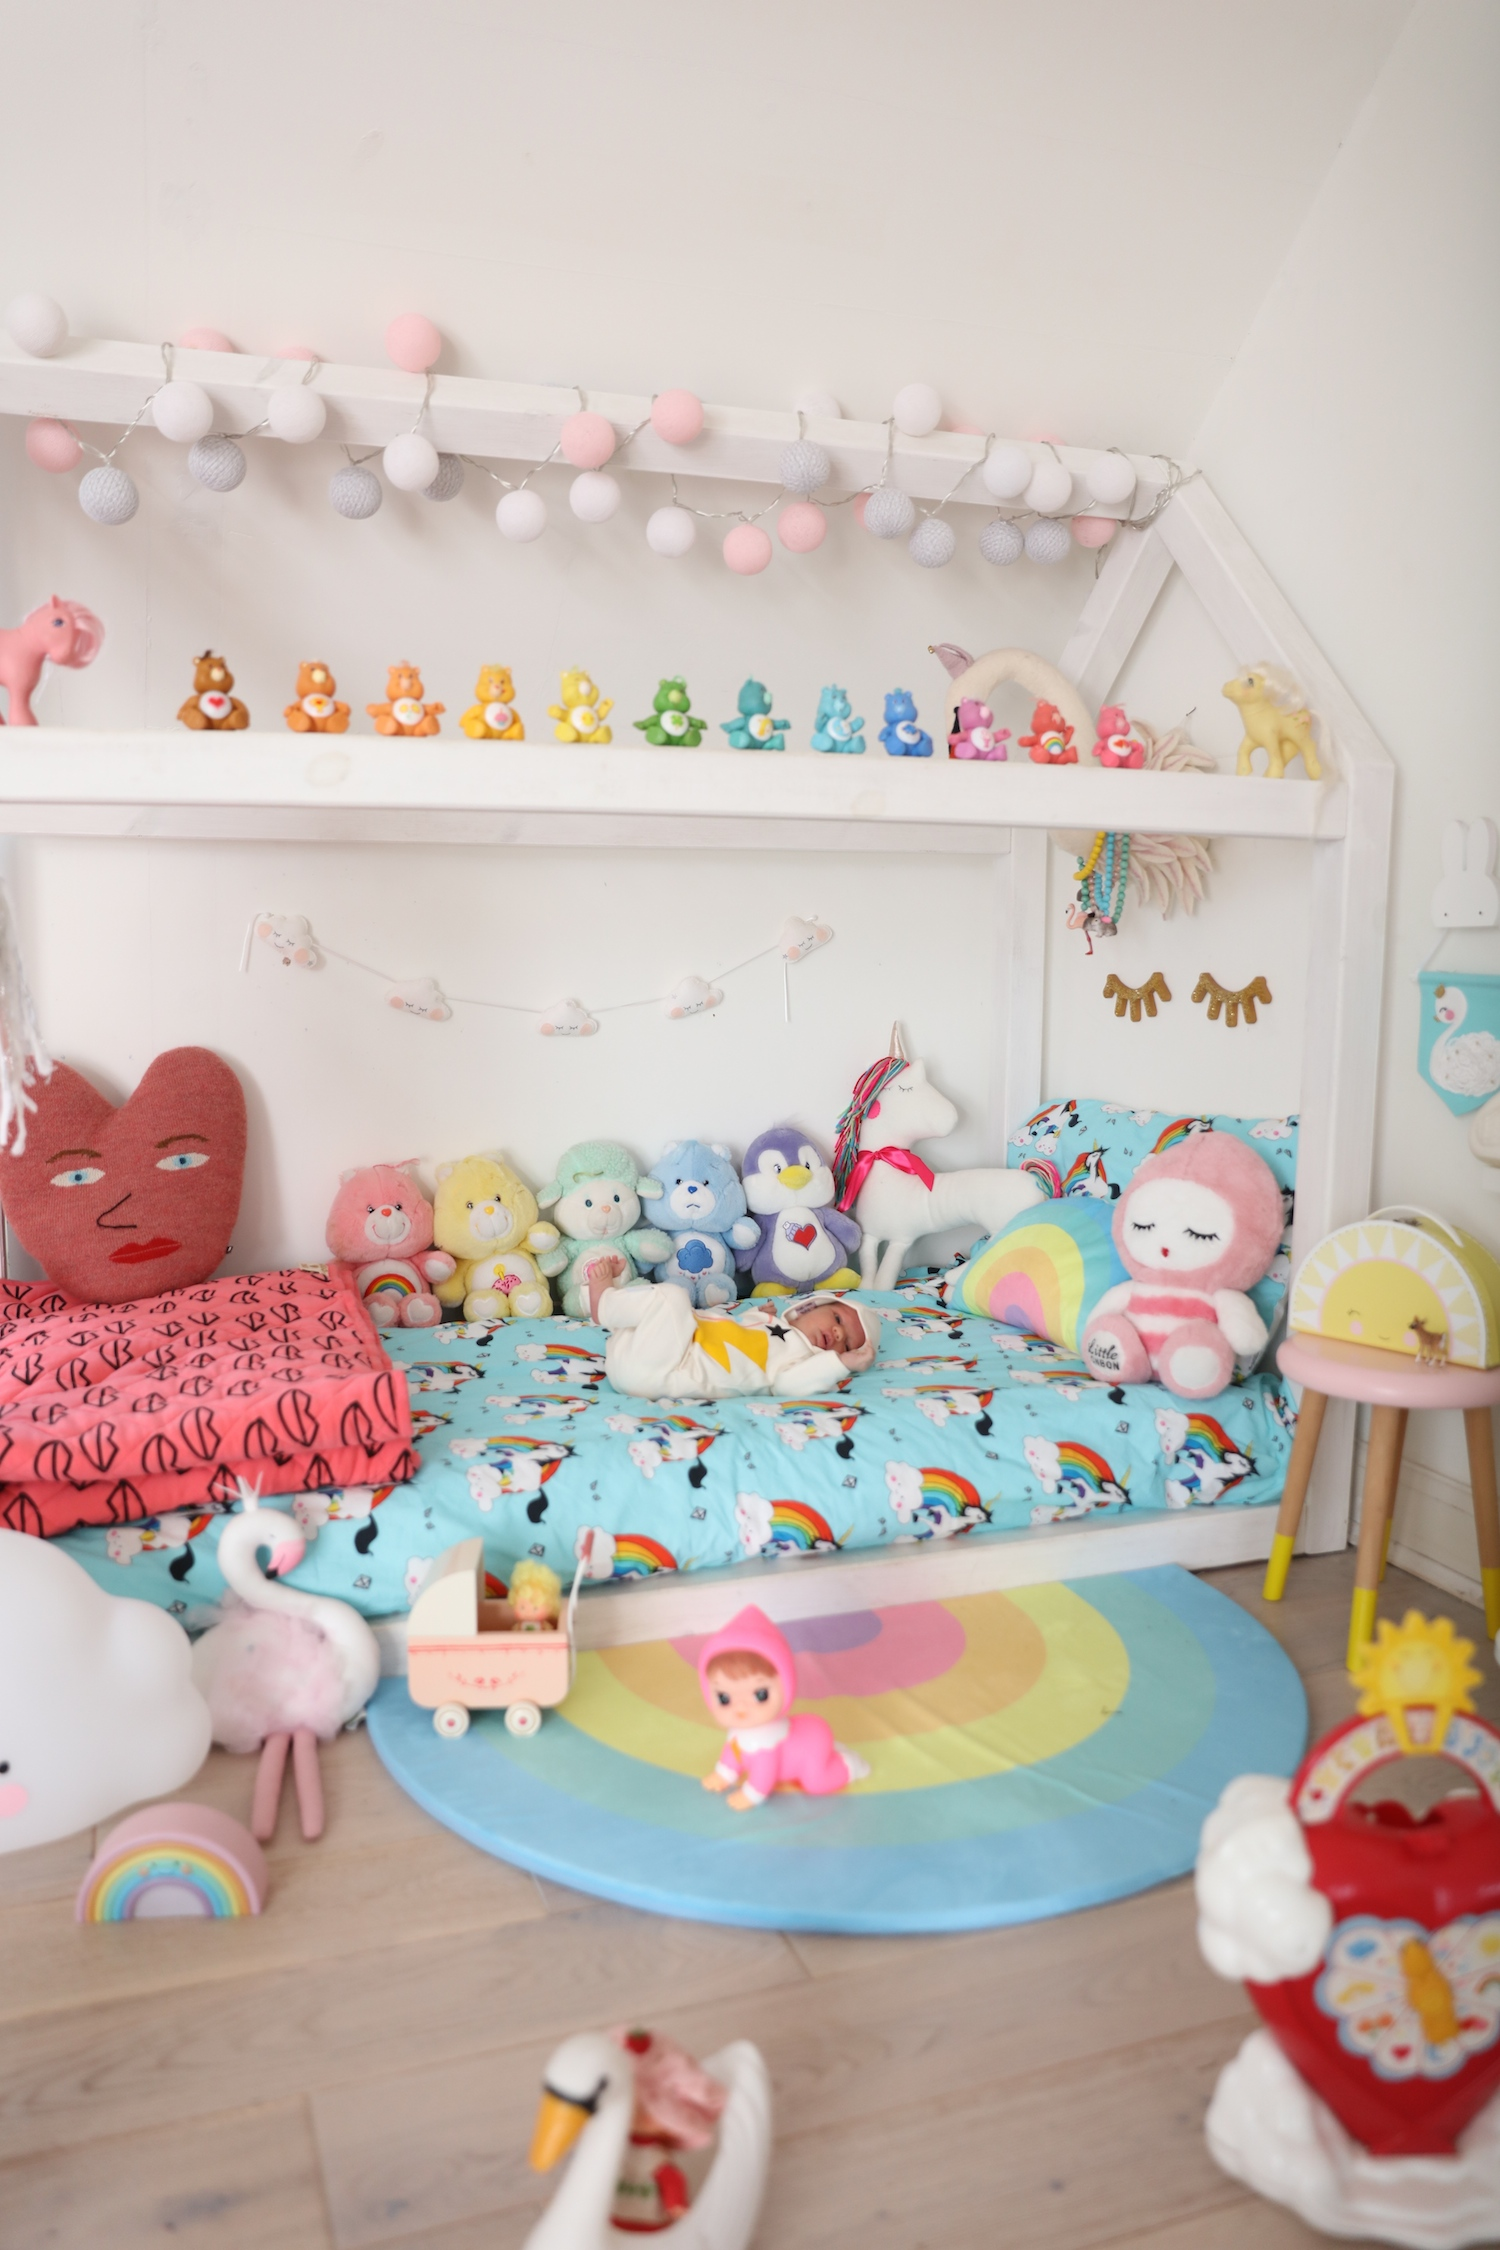 hugo_loves_tiki_uilt_girls_bedroom_rainbows_care_bears